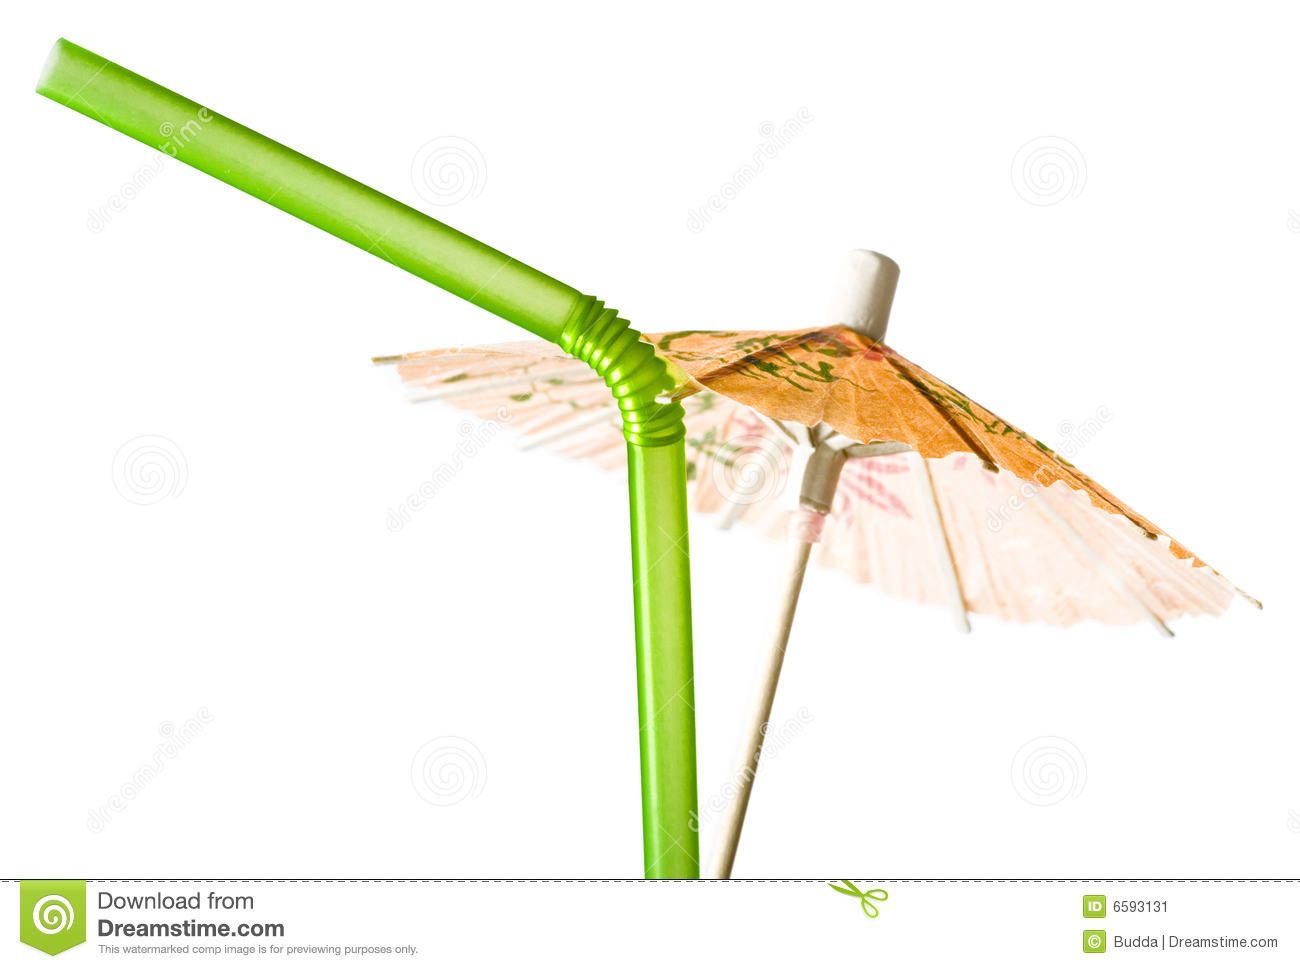 Cocktail Umbrella and Drinking Straw